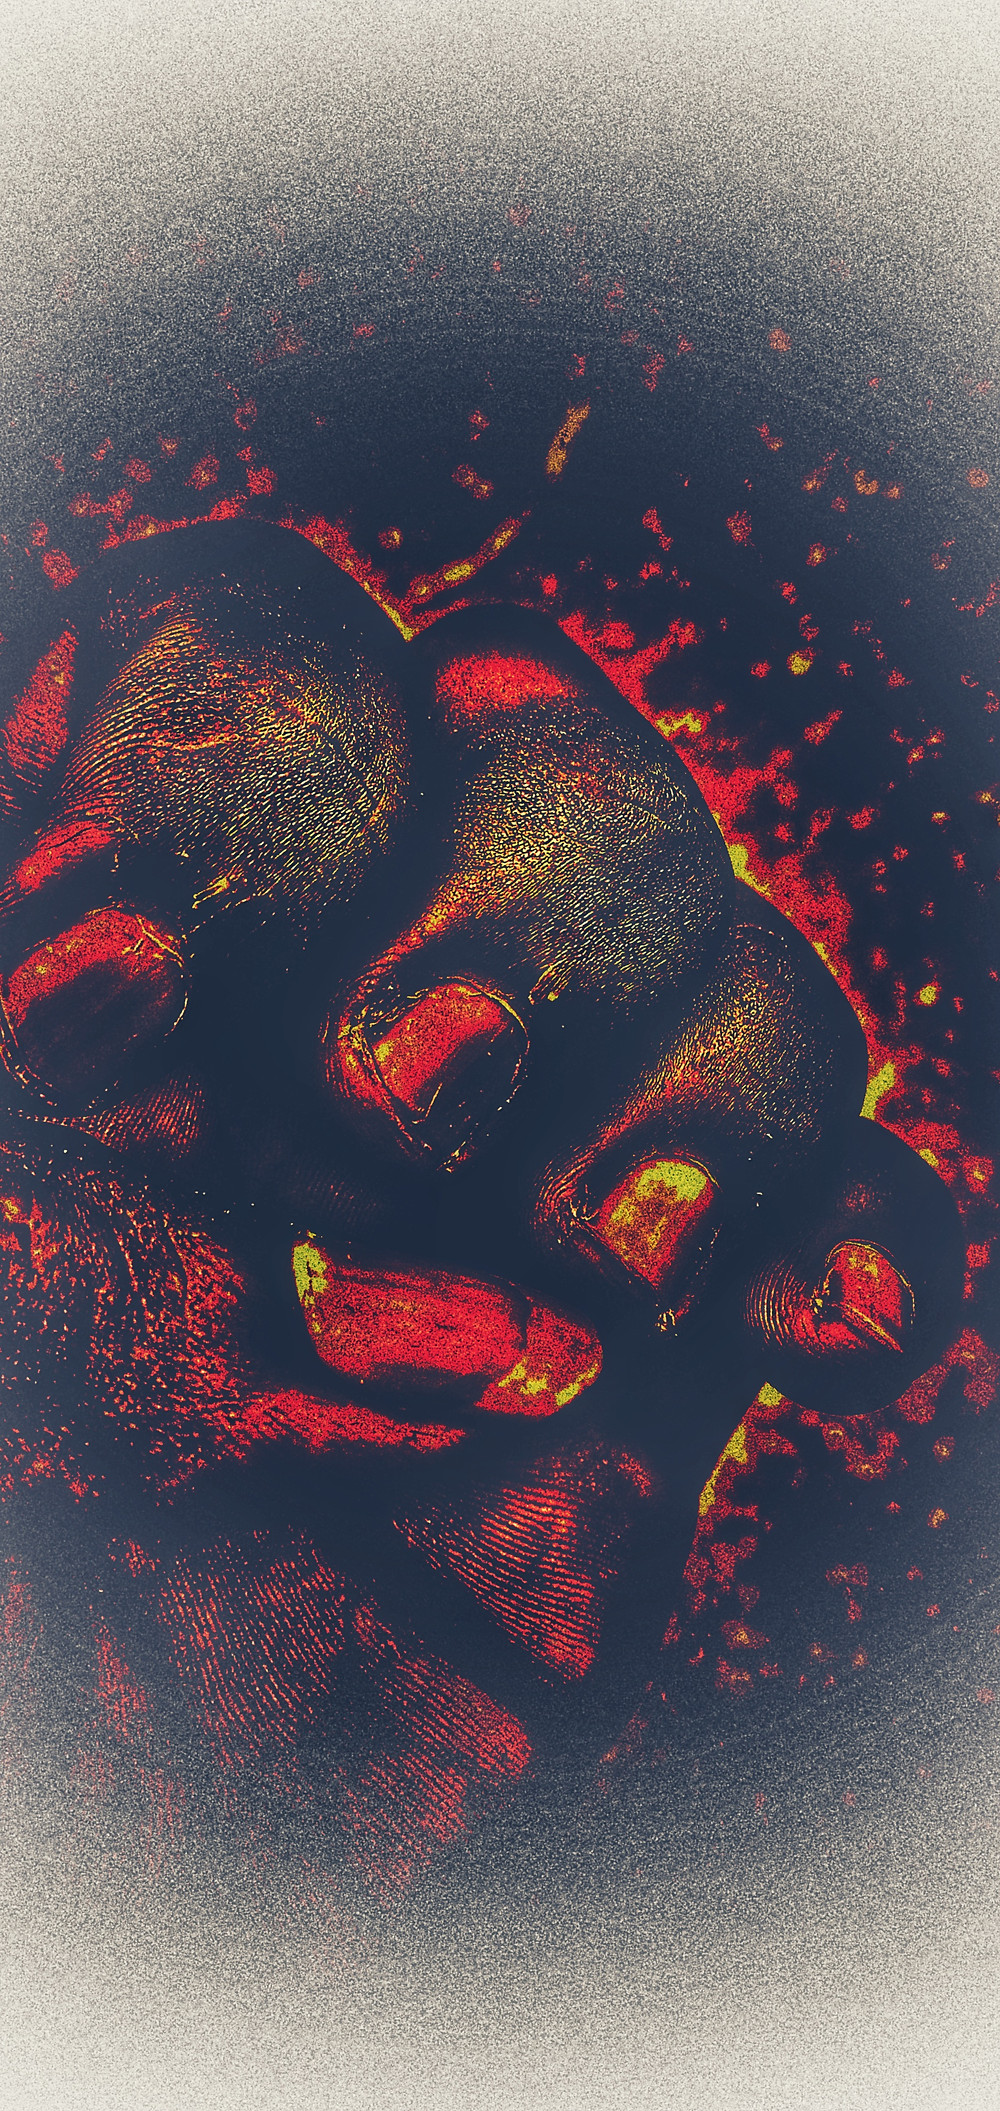 An edited image of a dark-skinned hand clenched in a fist. A red and orange filter is placed upon it, making the area around the fist appear wreathed in color.